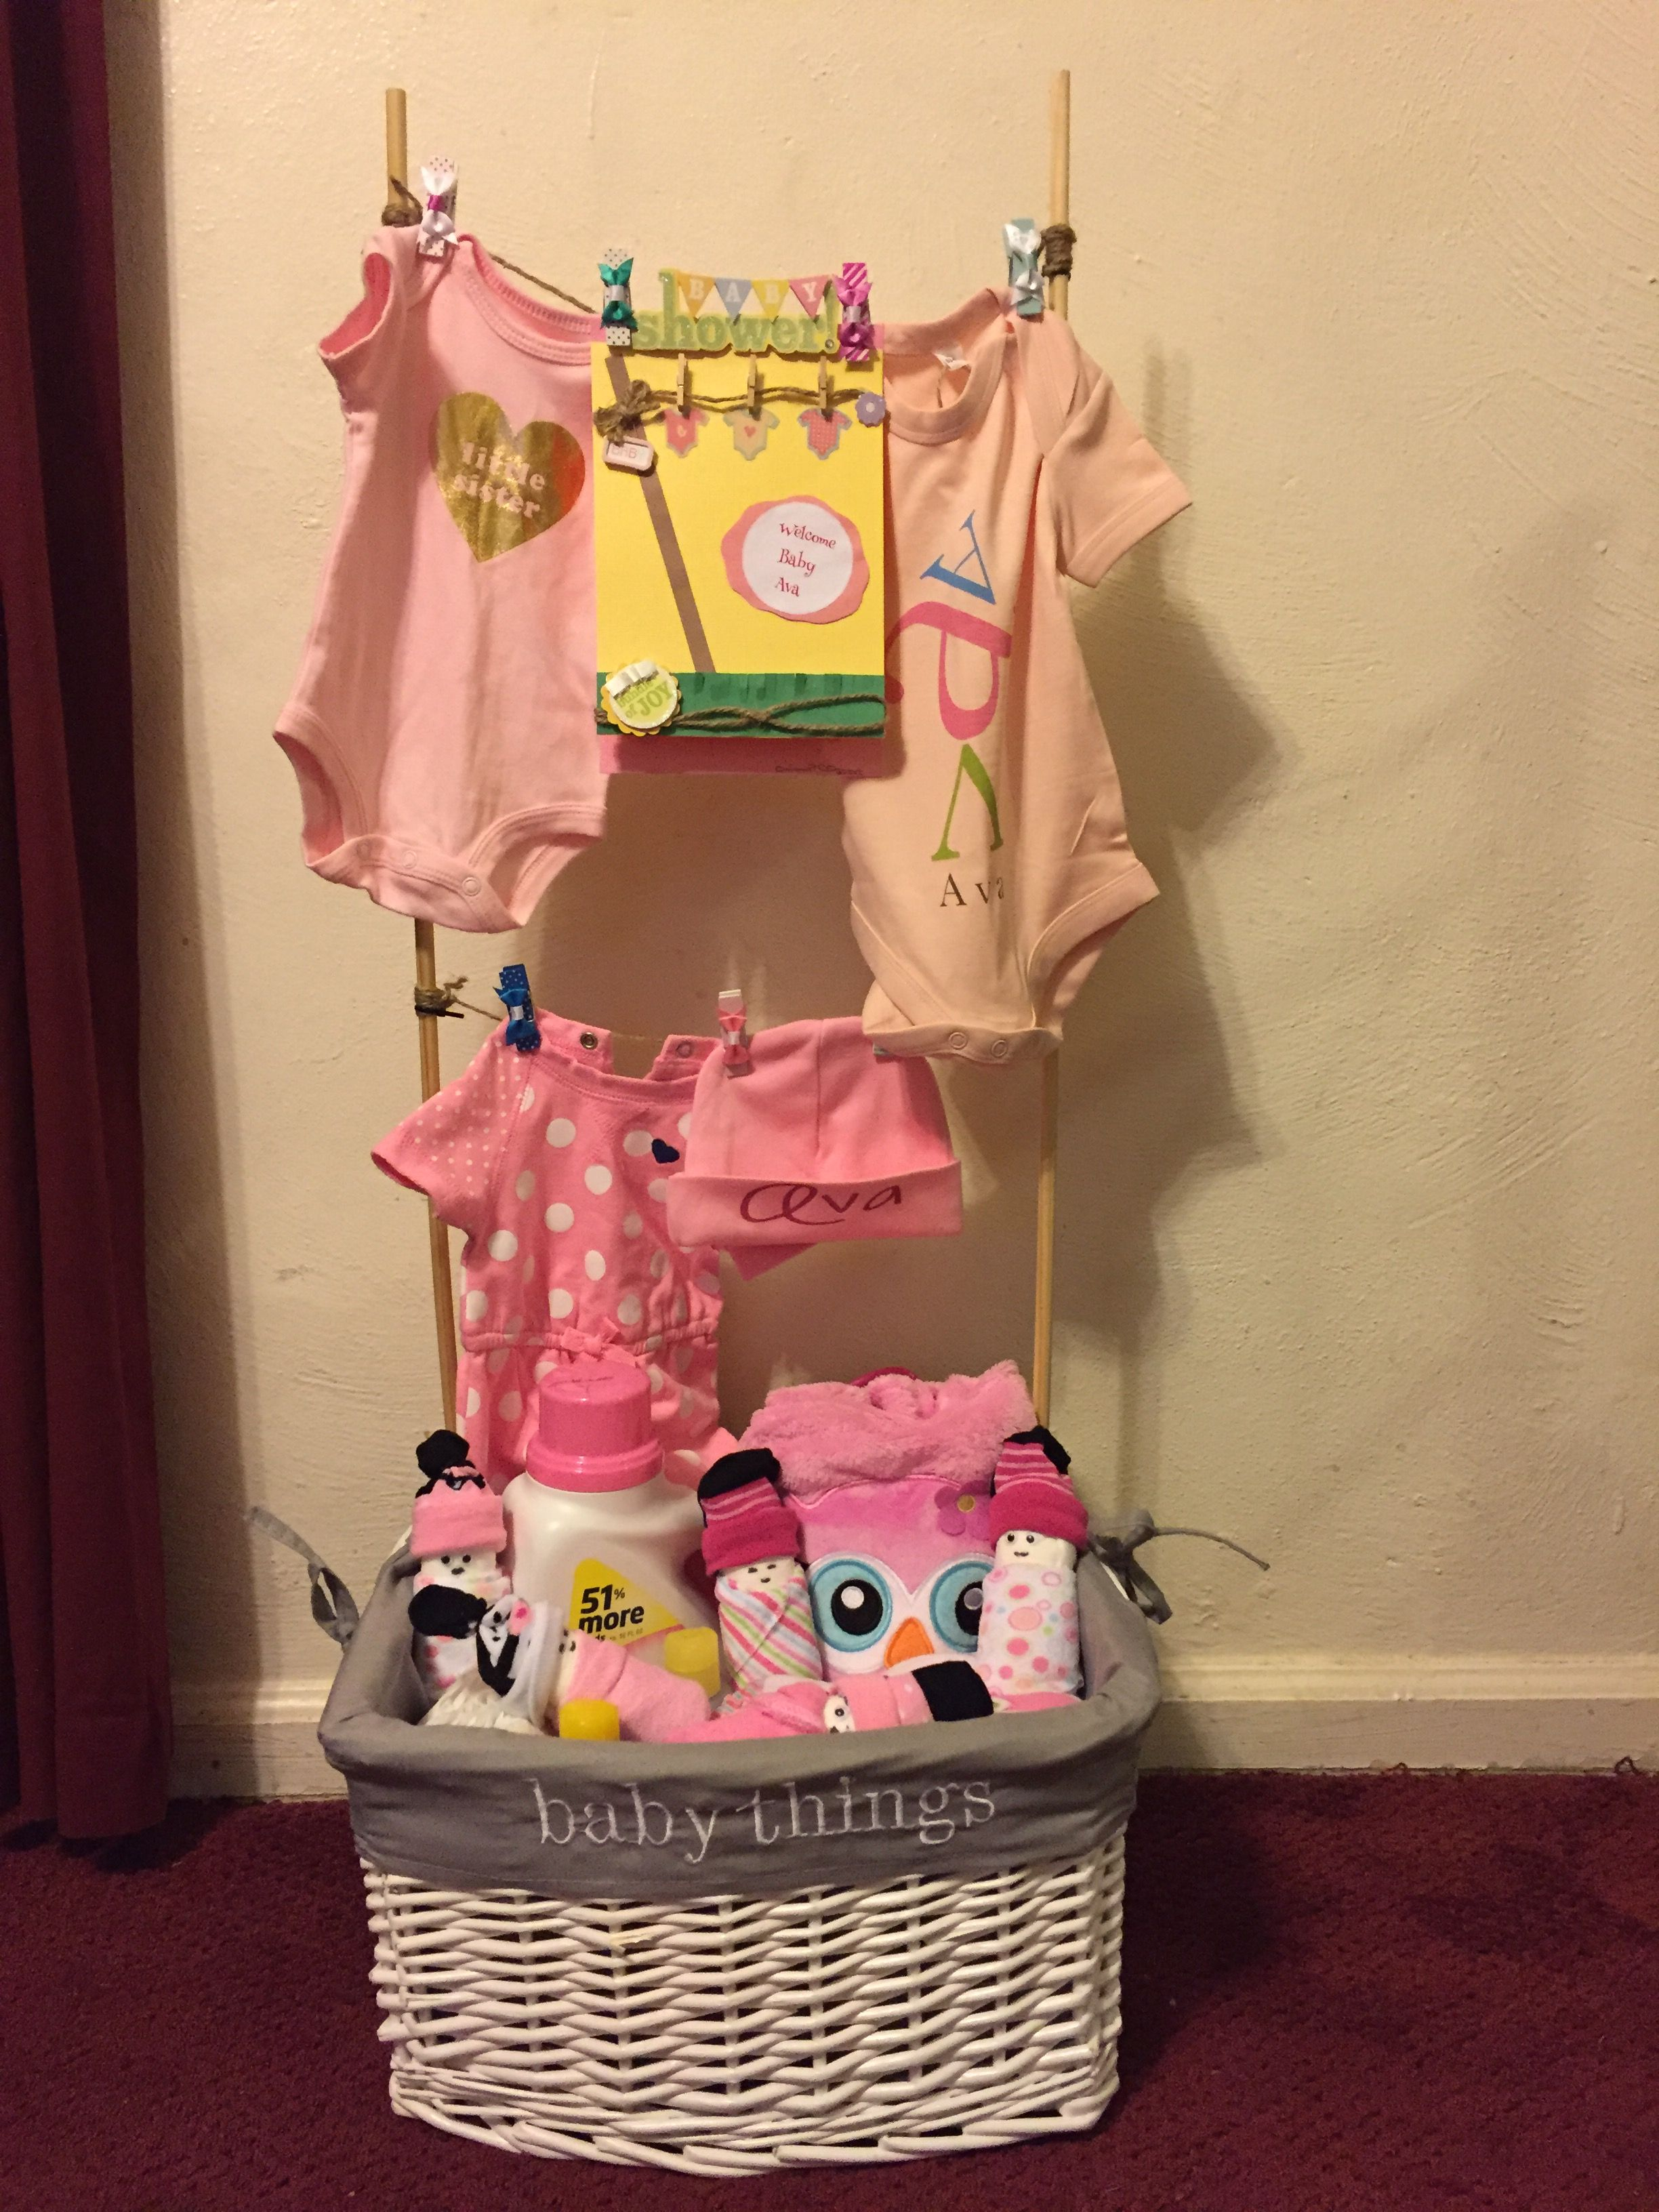 baby clothesline laundry basket i made made by me pinterest windeltorte baby geschenke. Black Bedroom Furniture Sets. Home Design Ideas